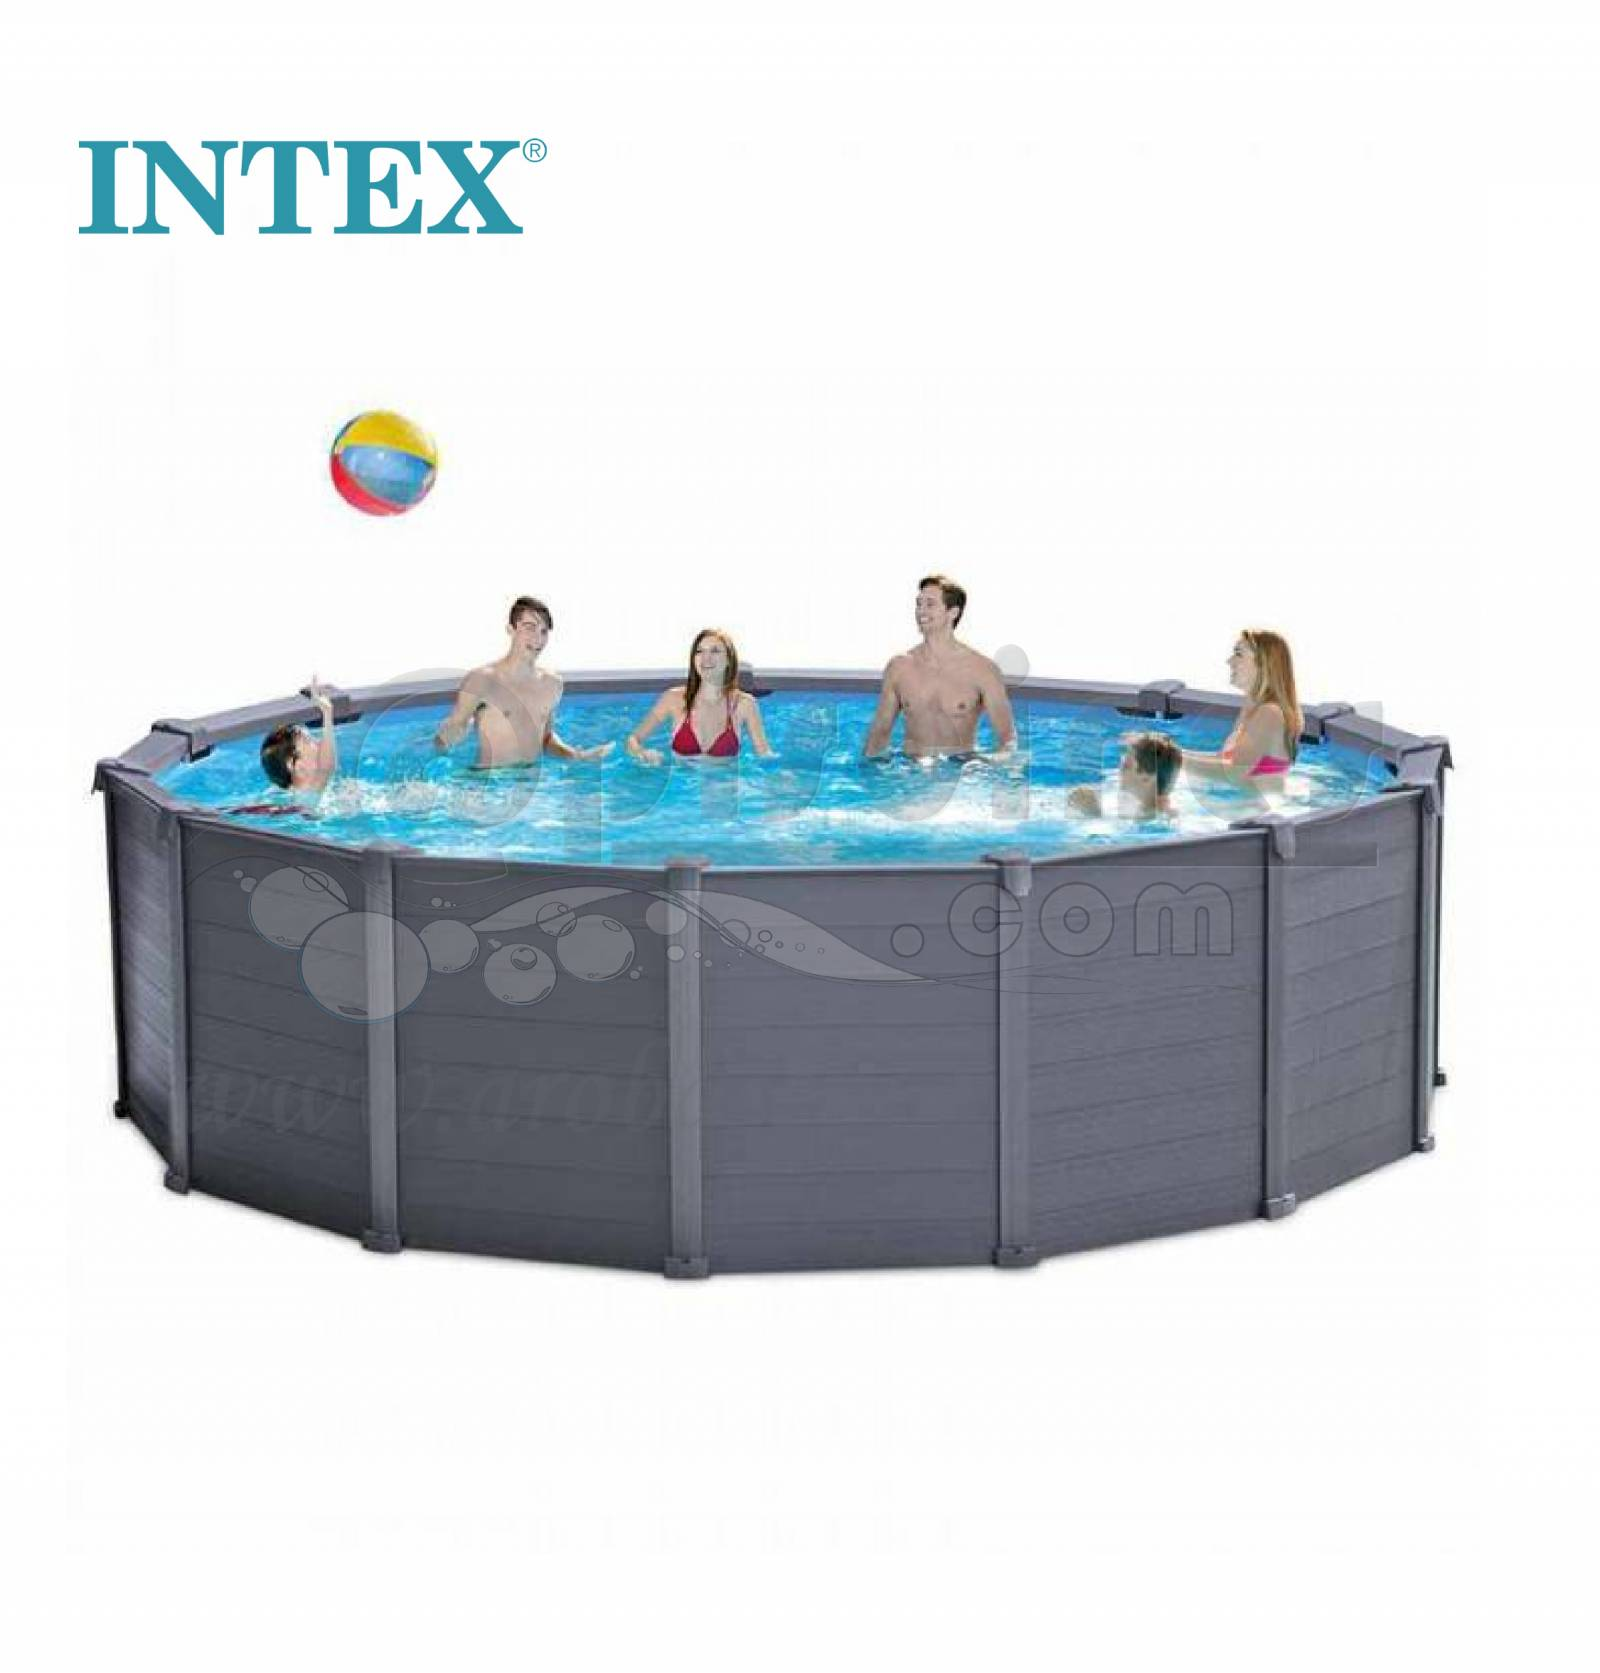 Piscine tubulaire hors sol ronde 4 78m intex graphite for Piscine tubulaire pas chere